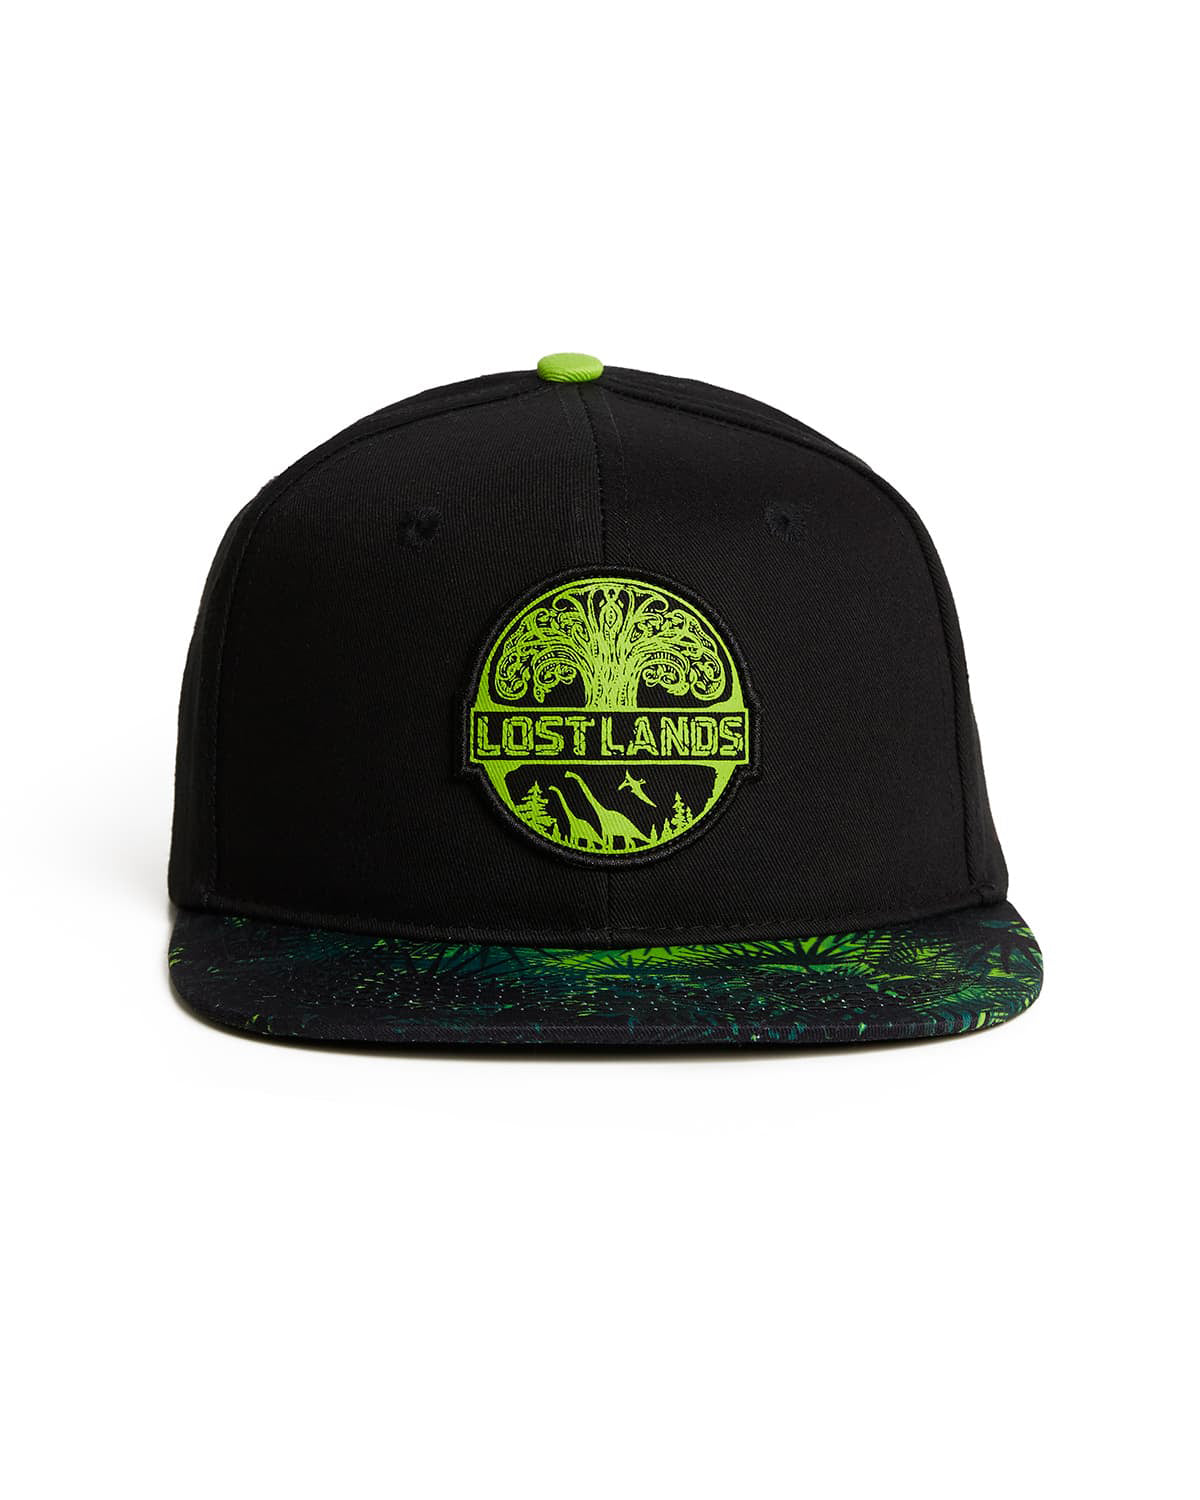 Lost Lands 'Tree of Life' Snapback (Black/Green)